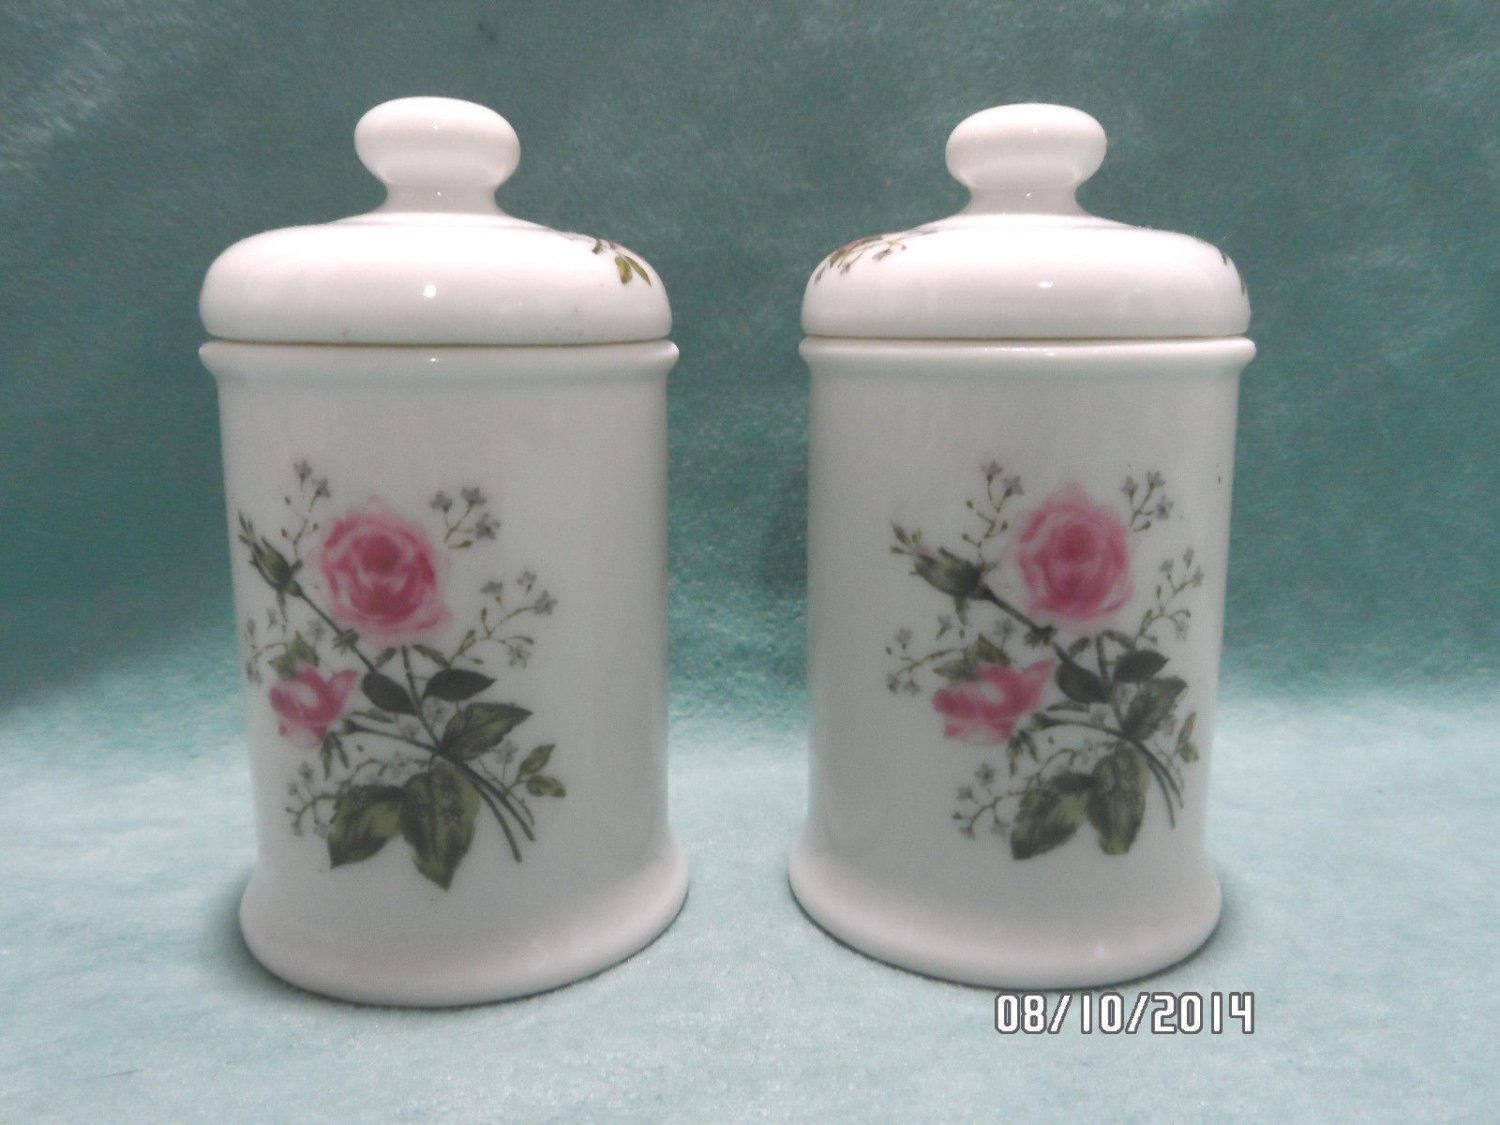 Vanity Dresser Jars with Lids White Porcelain Pink Roses by Lefton Japan